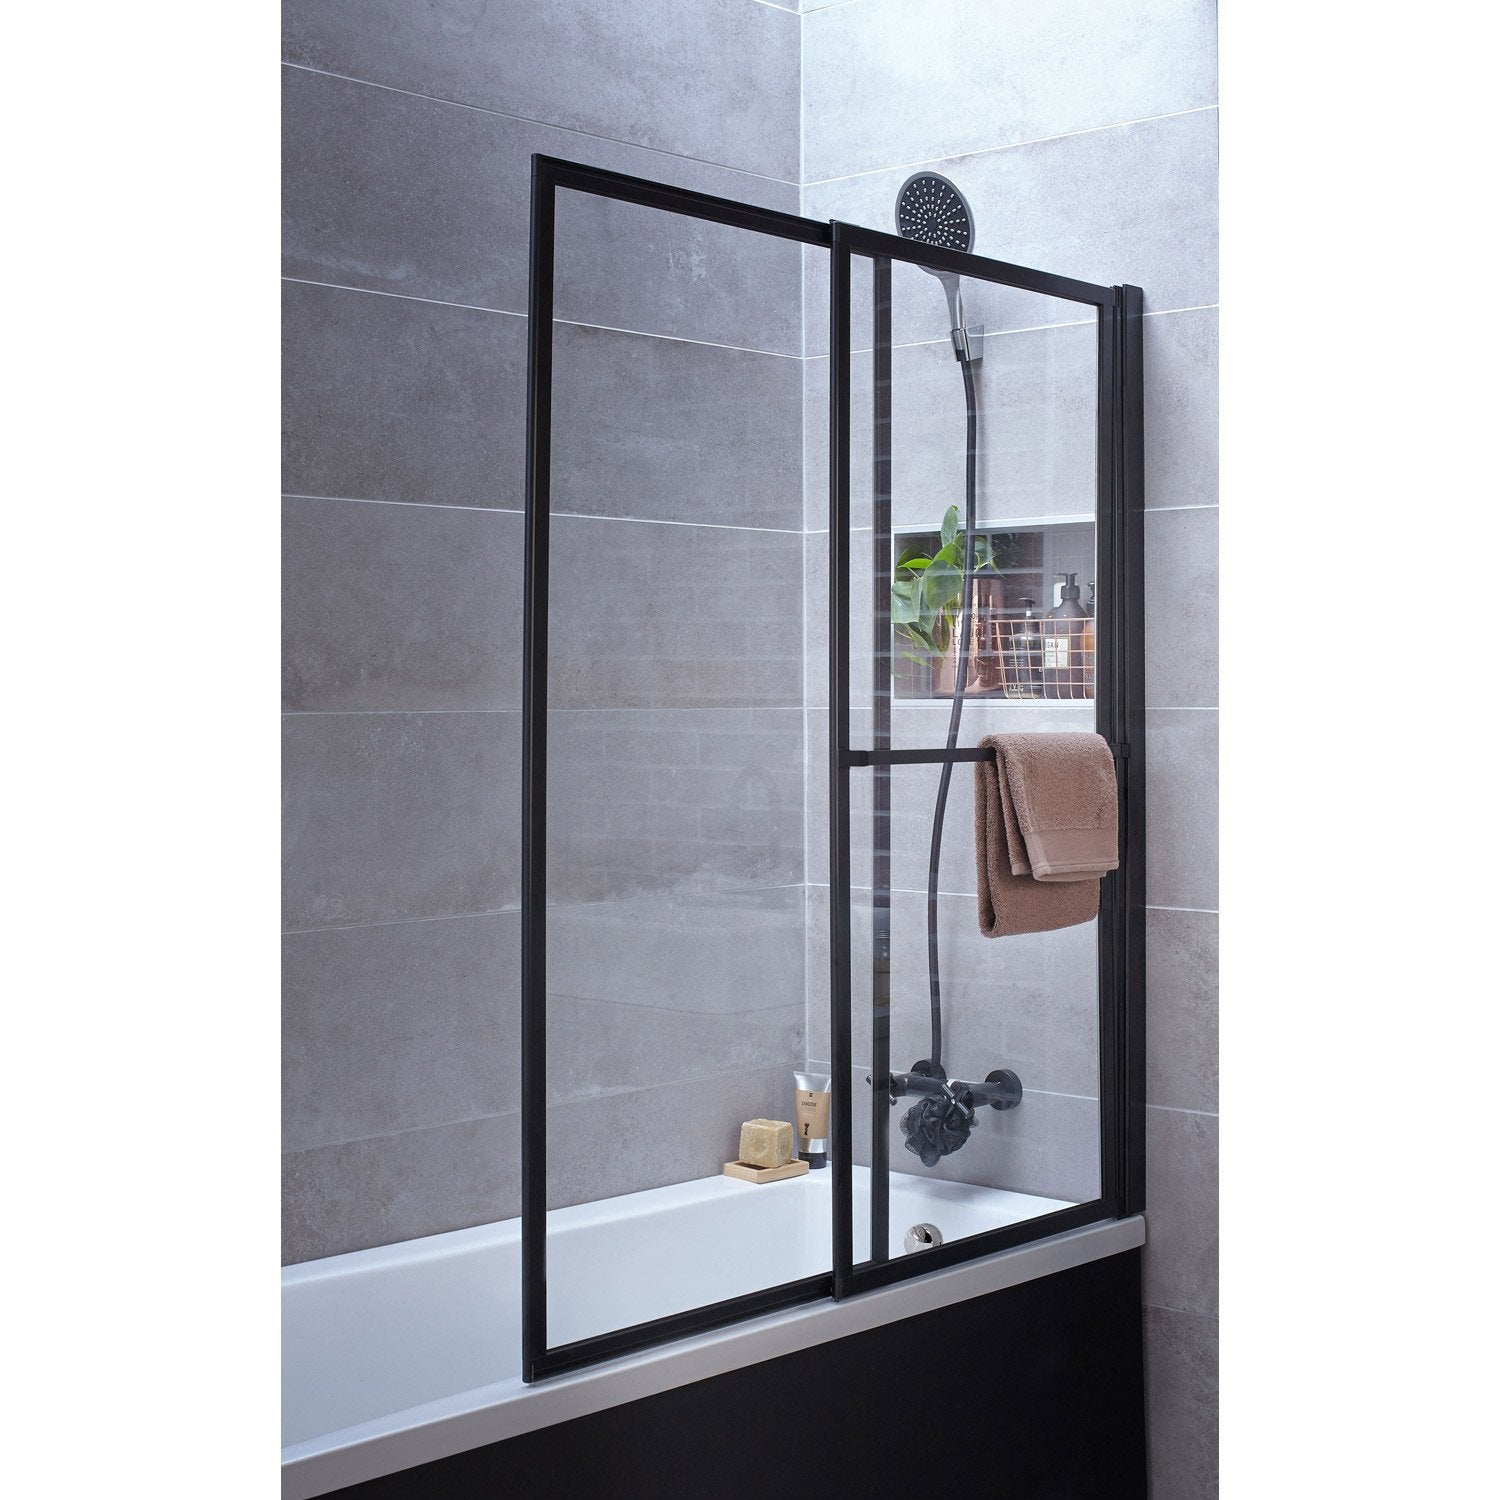 great volets pivotant coulissant x cm verre transparent lift with installer pare baignoire sans. Black Bedroom Furniture Sets. Home Design Ideas